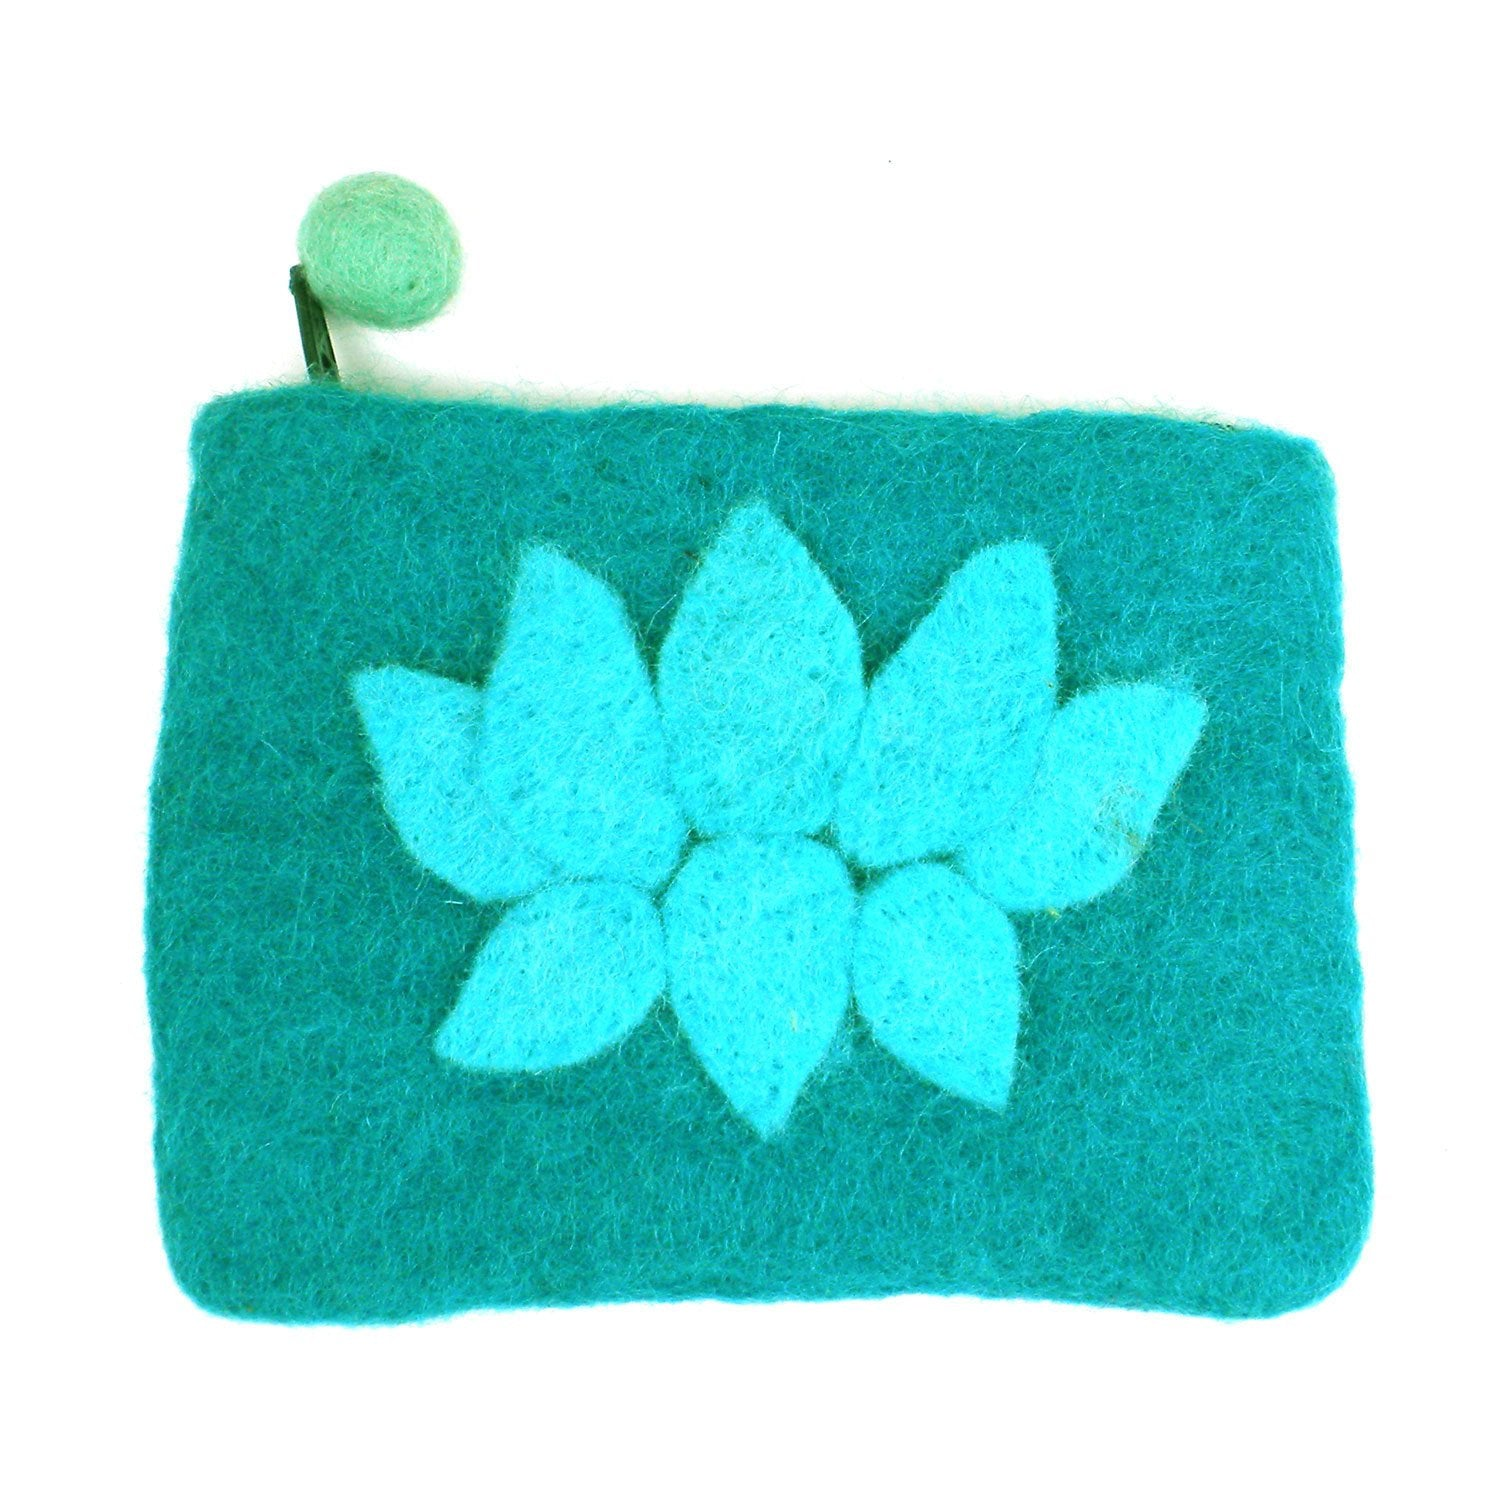 Hand Crafted Felt Pouch from Nepal: Lotus Flower, Turquoise